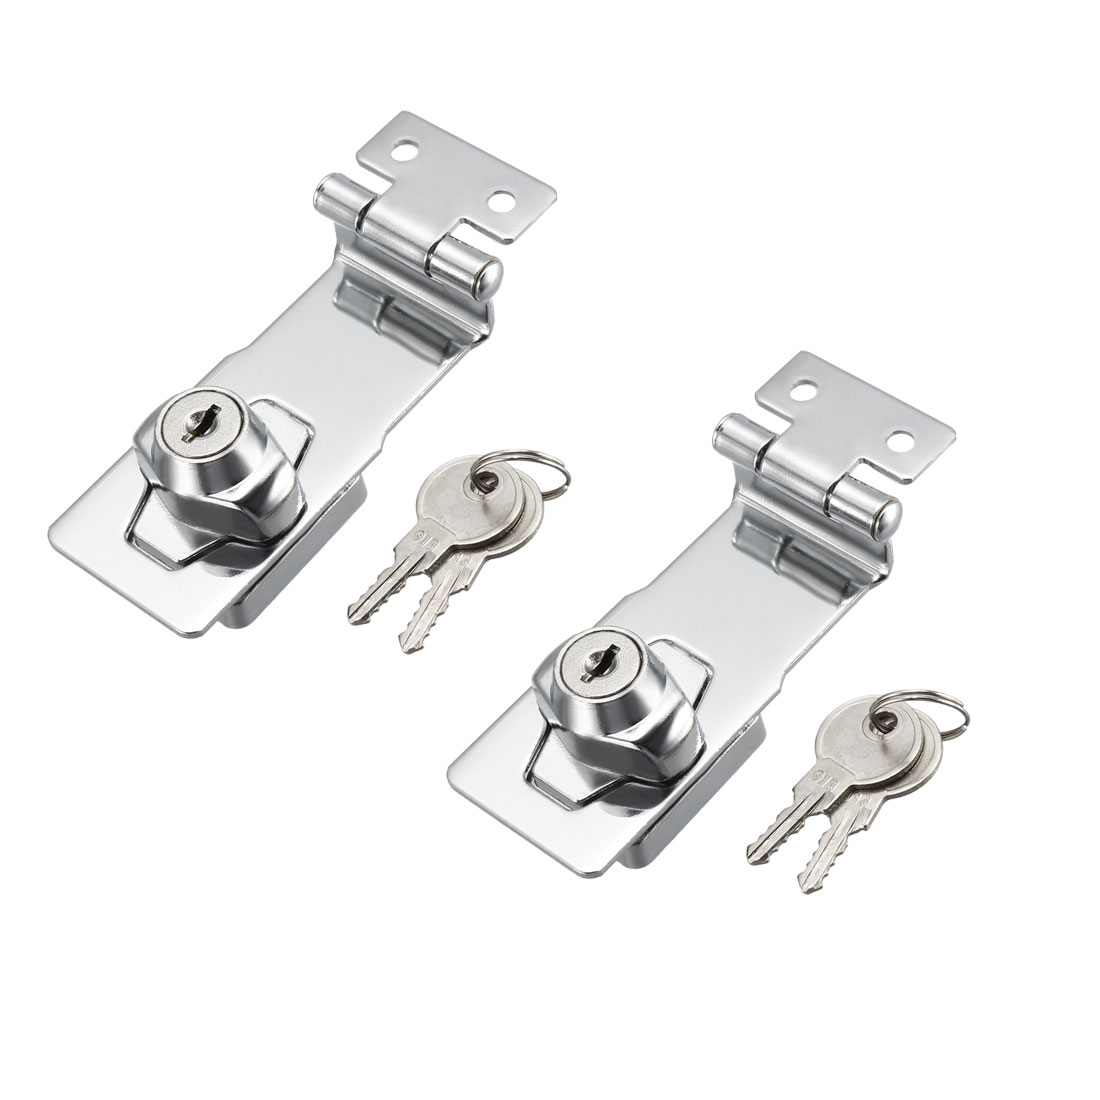 Keyed Hasp Lock 92mm Twist Knob Keyed Locking Hasp for Door Cabinet 2 Pcs